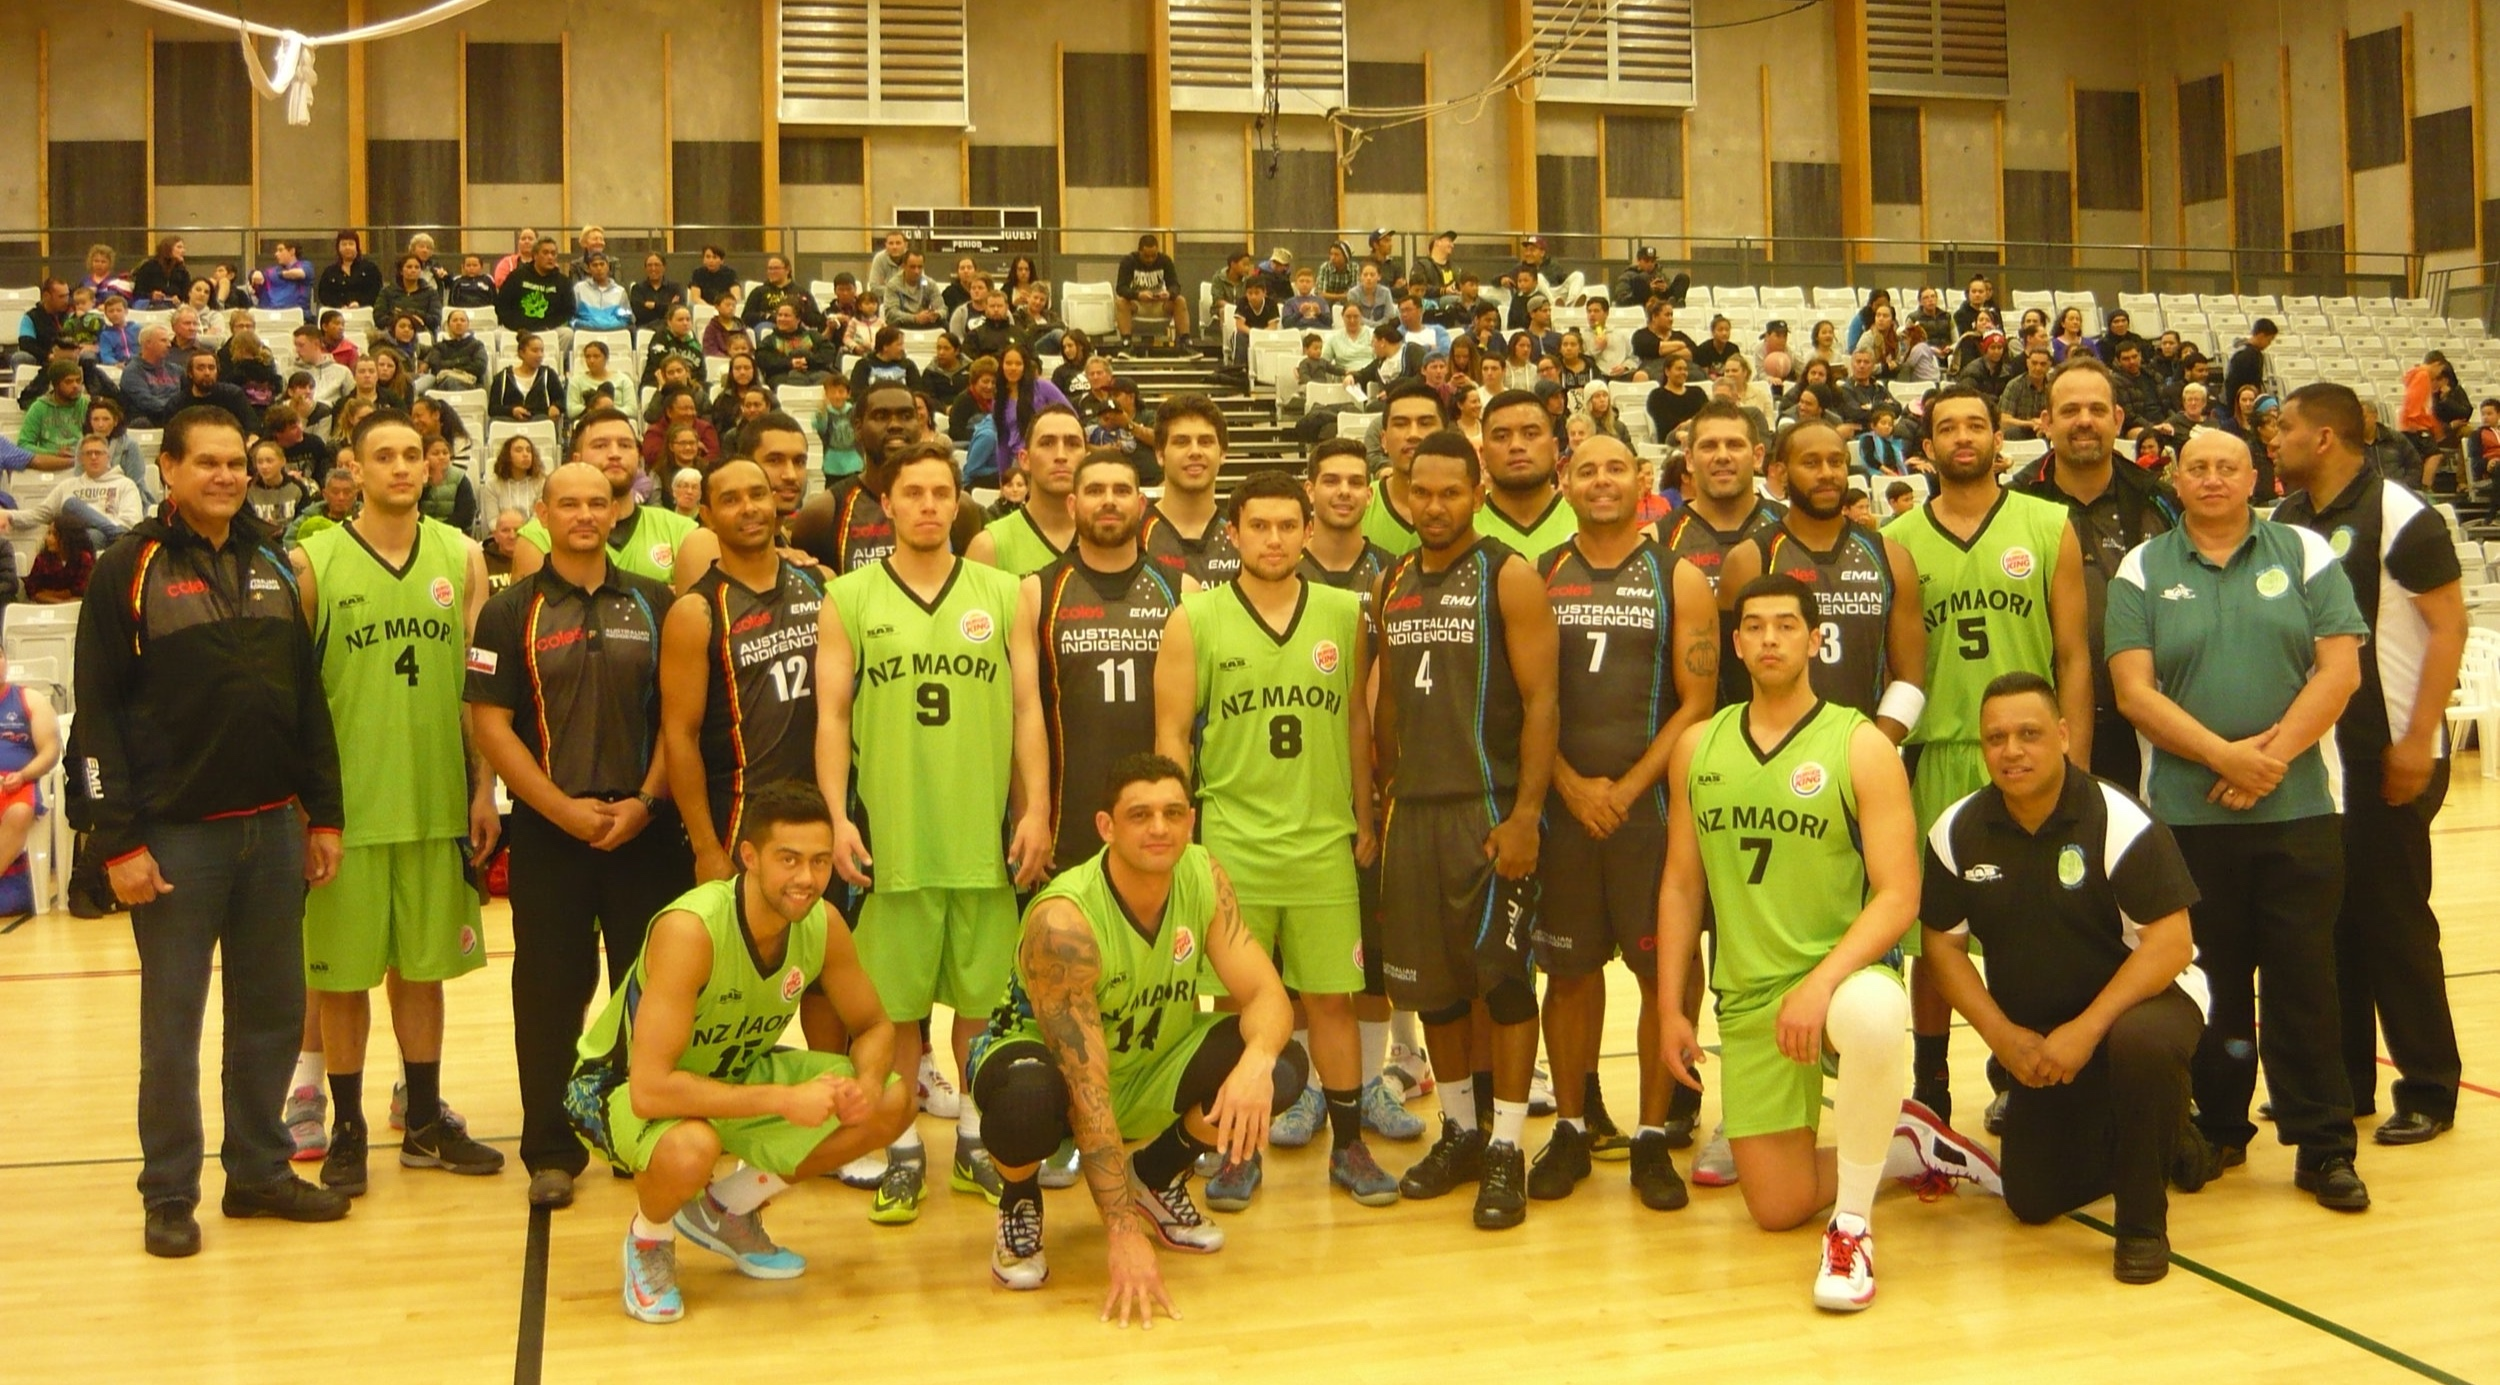 The 2014 Australian Indigenous Basketball All Stars & New Zealand Maori National Team join together for a group picture before the first ever Trans-Tasman game played in Otaki.